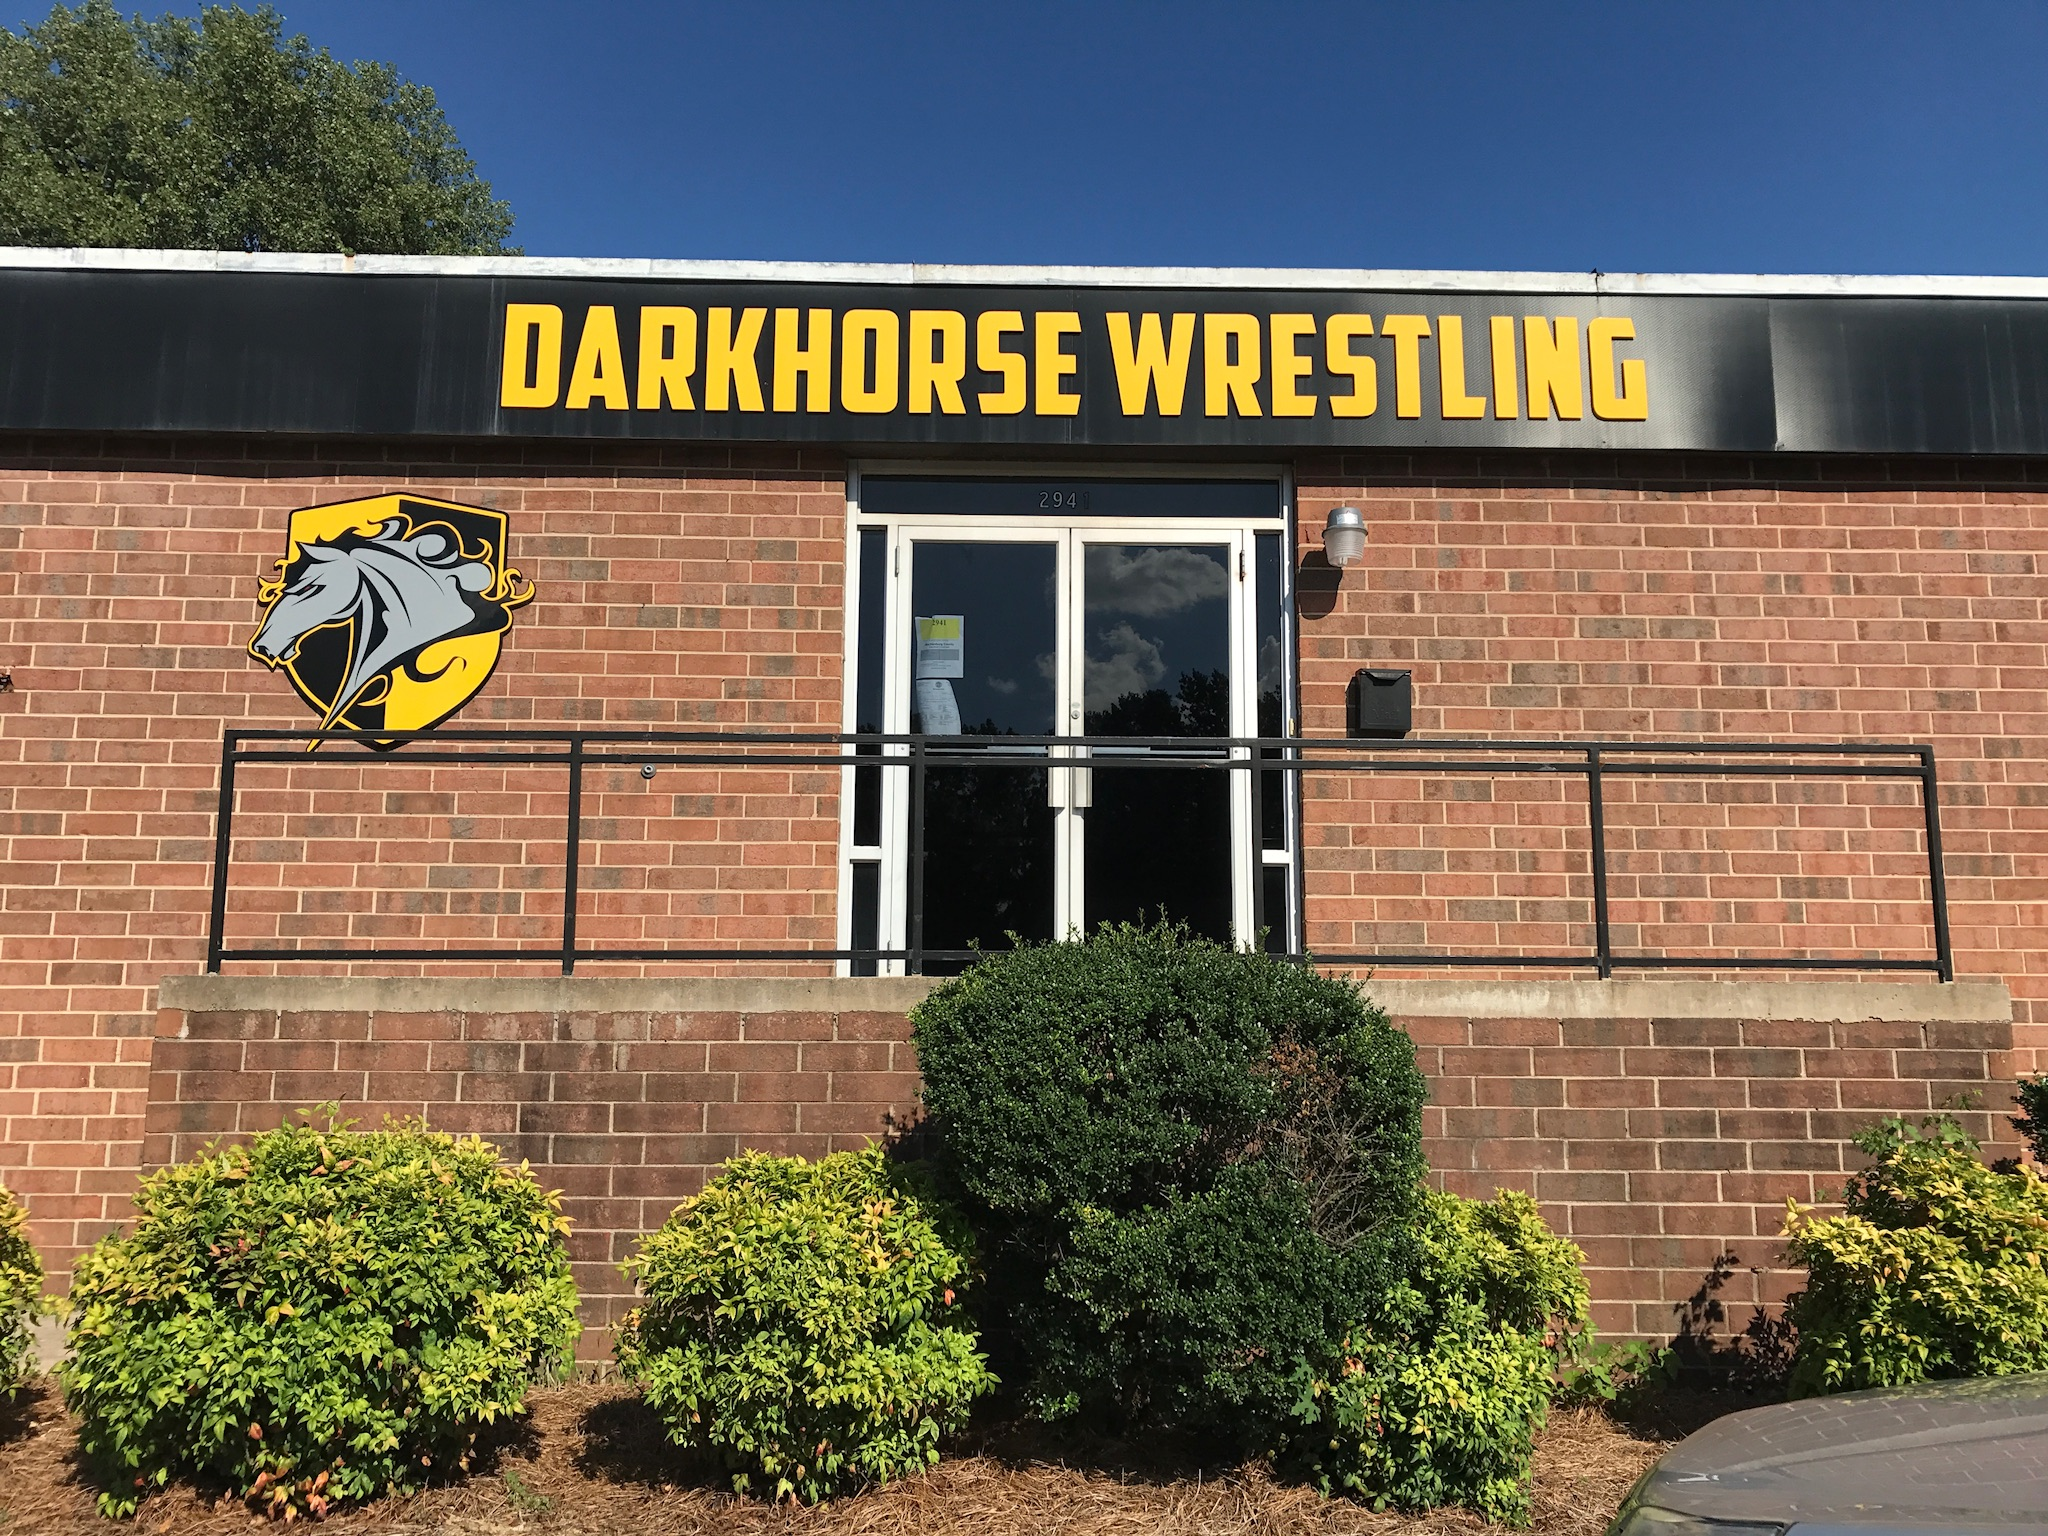 Darkhorse Wrestling Building